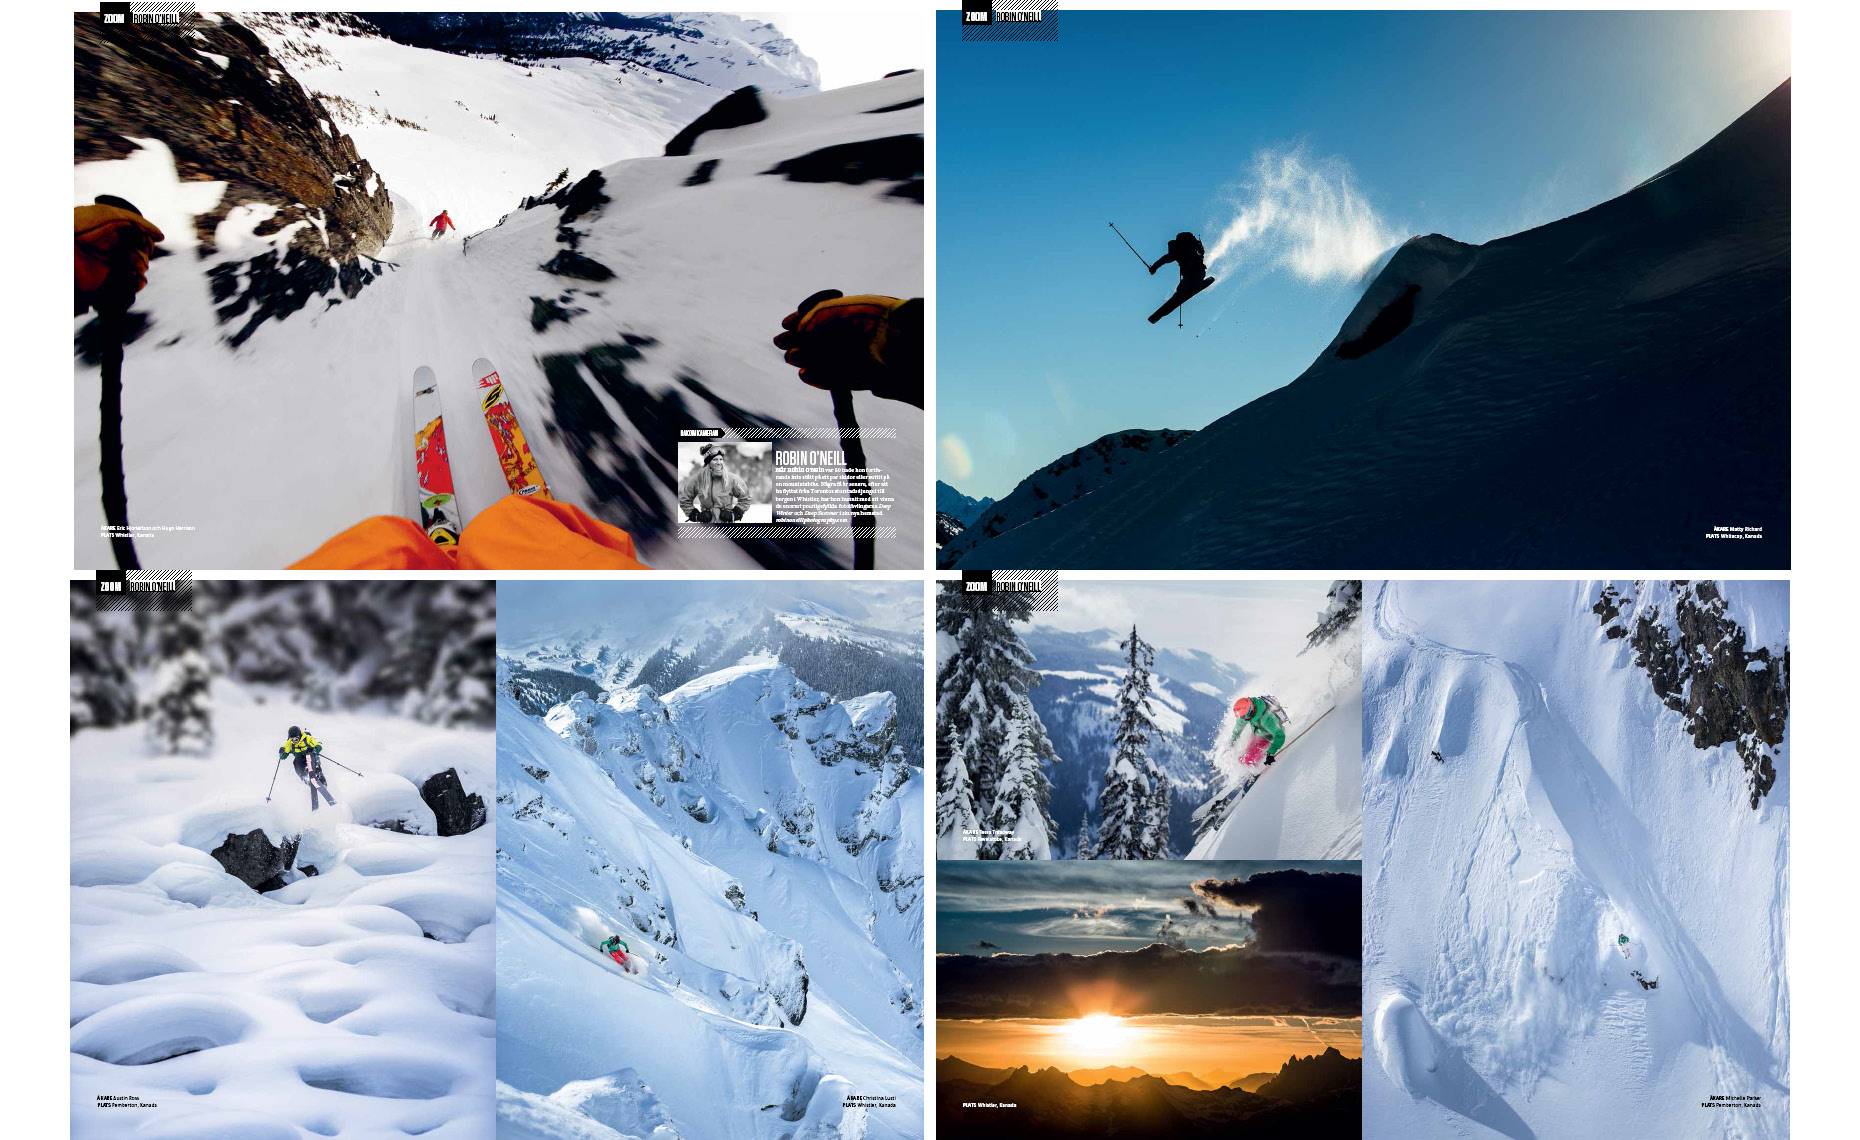 Aka Skidor spread on international ski action photographer featuring eric hjorleifson